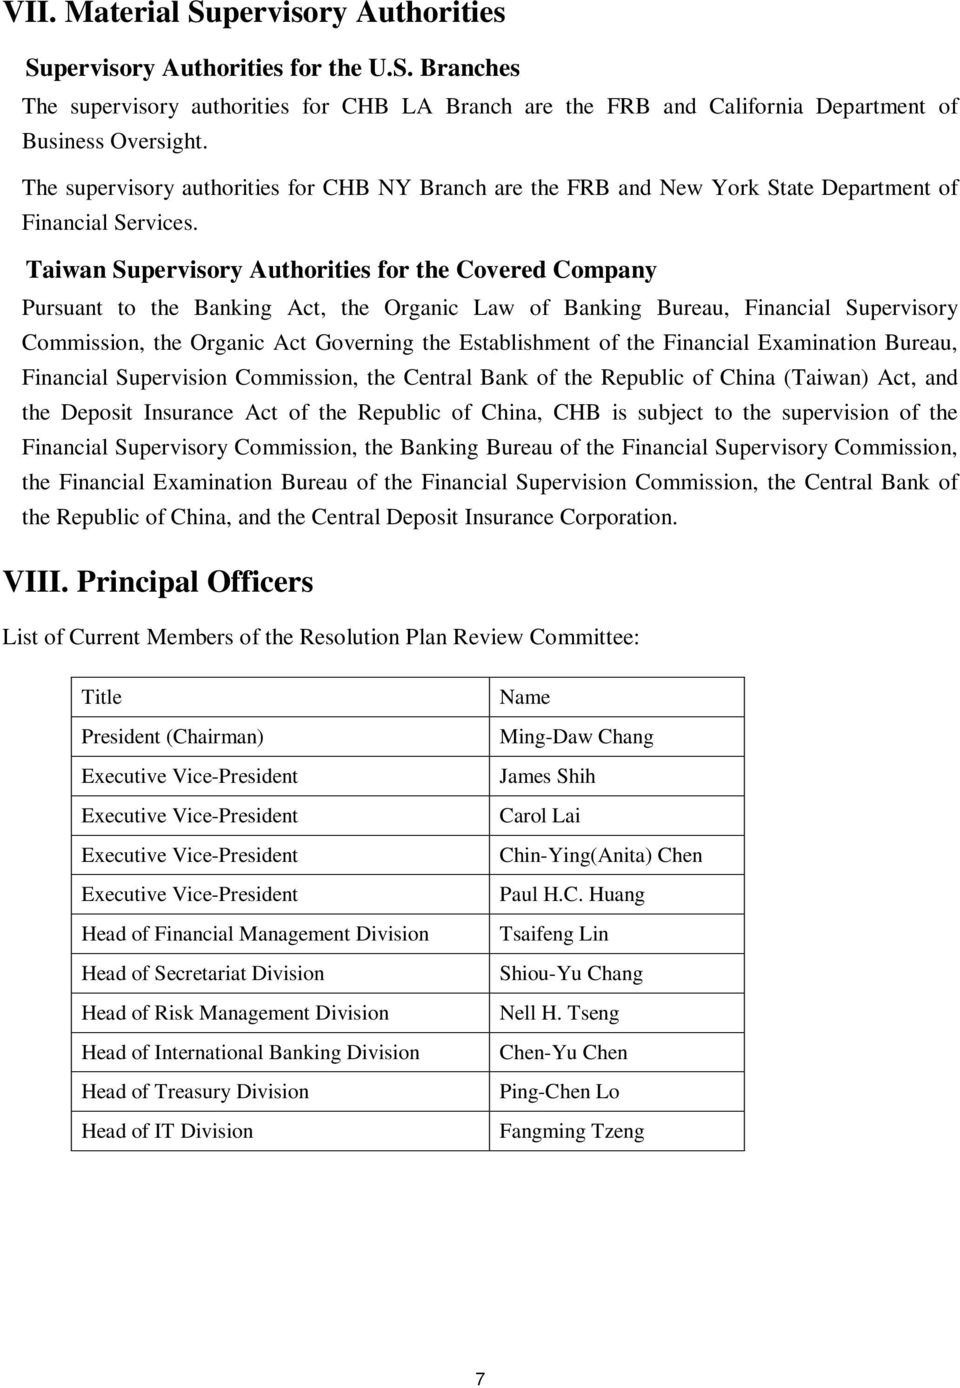 Taiwan Supervisory Authorities for the Covered Company Pursuant to the Banking Act, the Organic Law of Banking Bureau, Financial Supervisory Commission, the Organic Act Governing the Establishment of